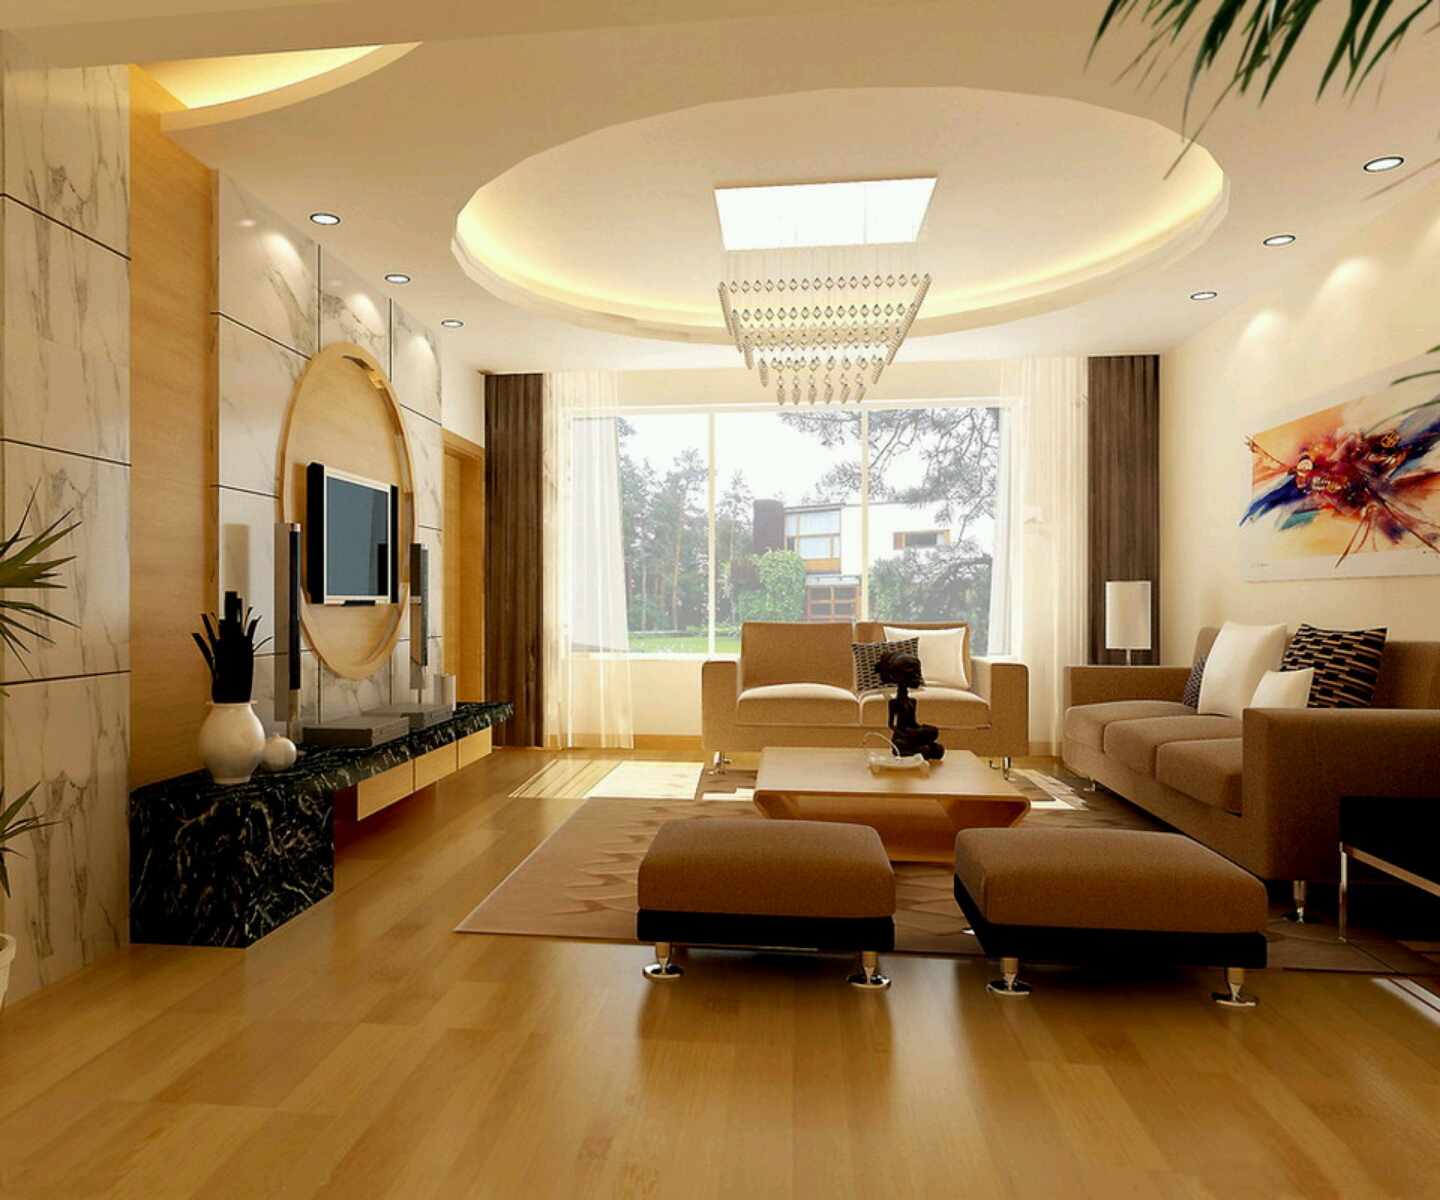 Modern interior decoration living rooms ceiling designs for New design home decoration